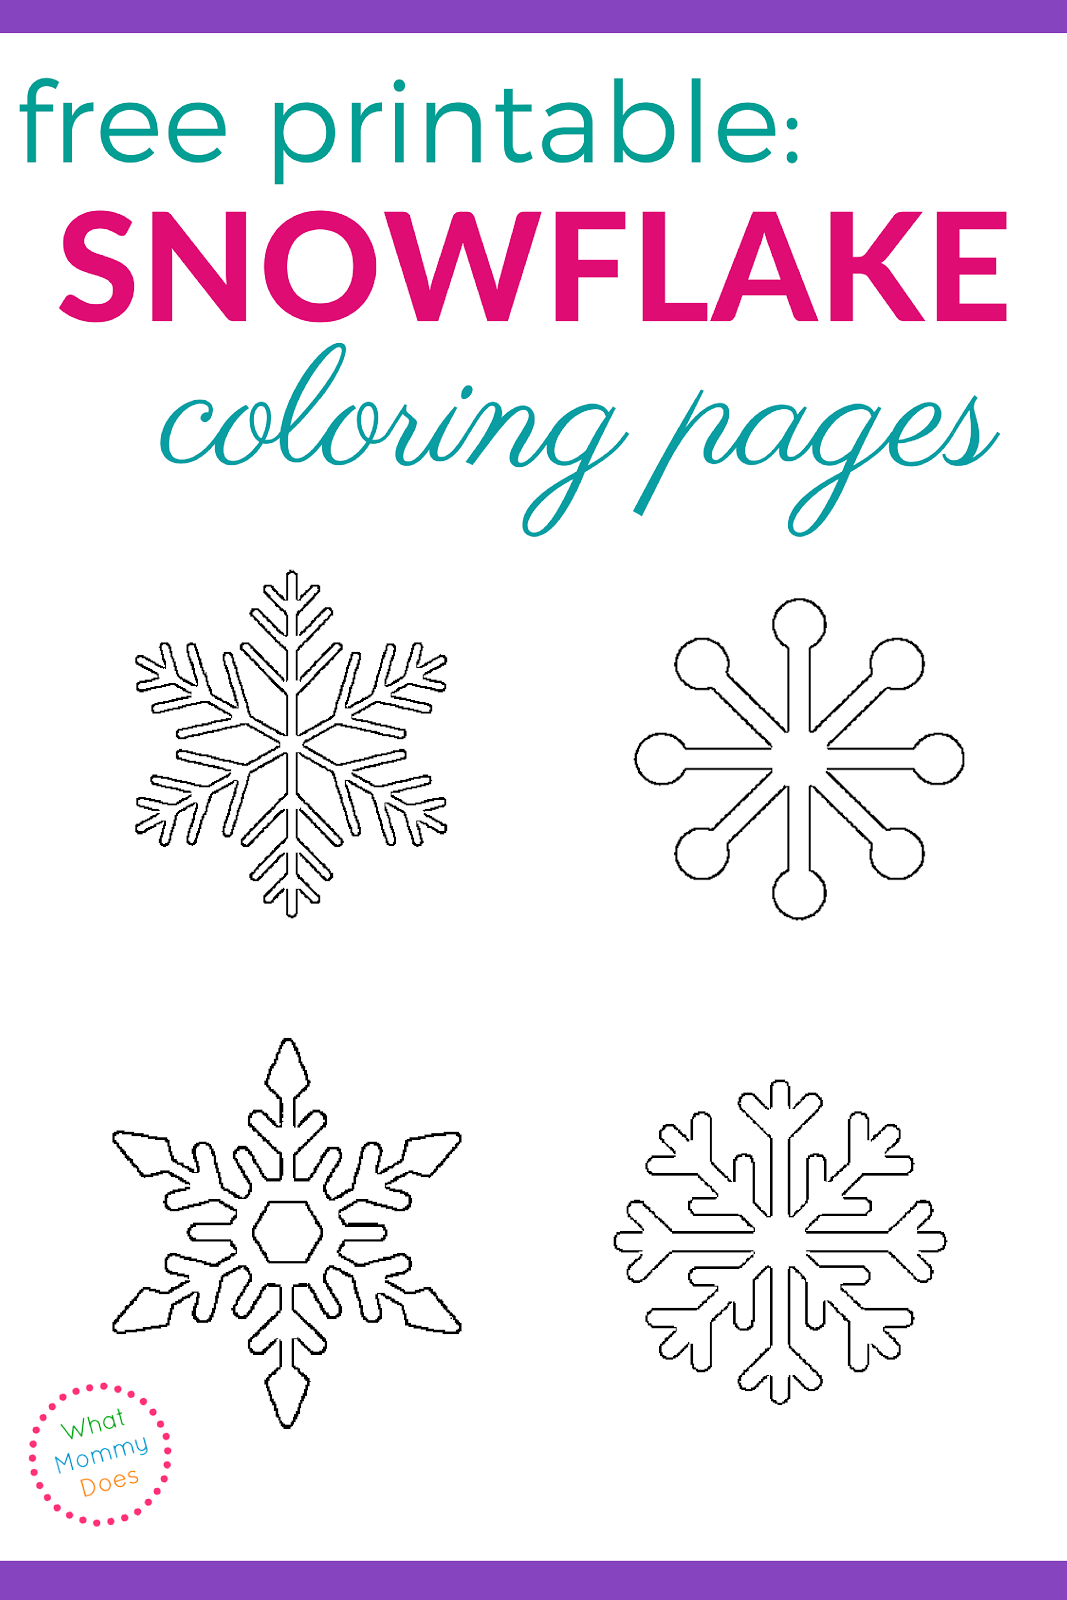 Free Printable Snowflake Coloring Pages | What Mommy Does